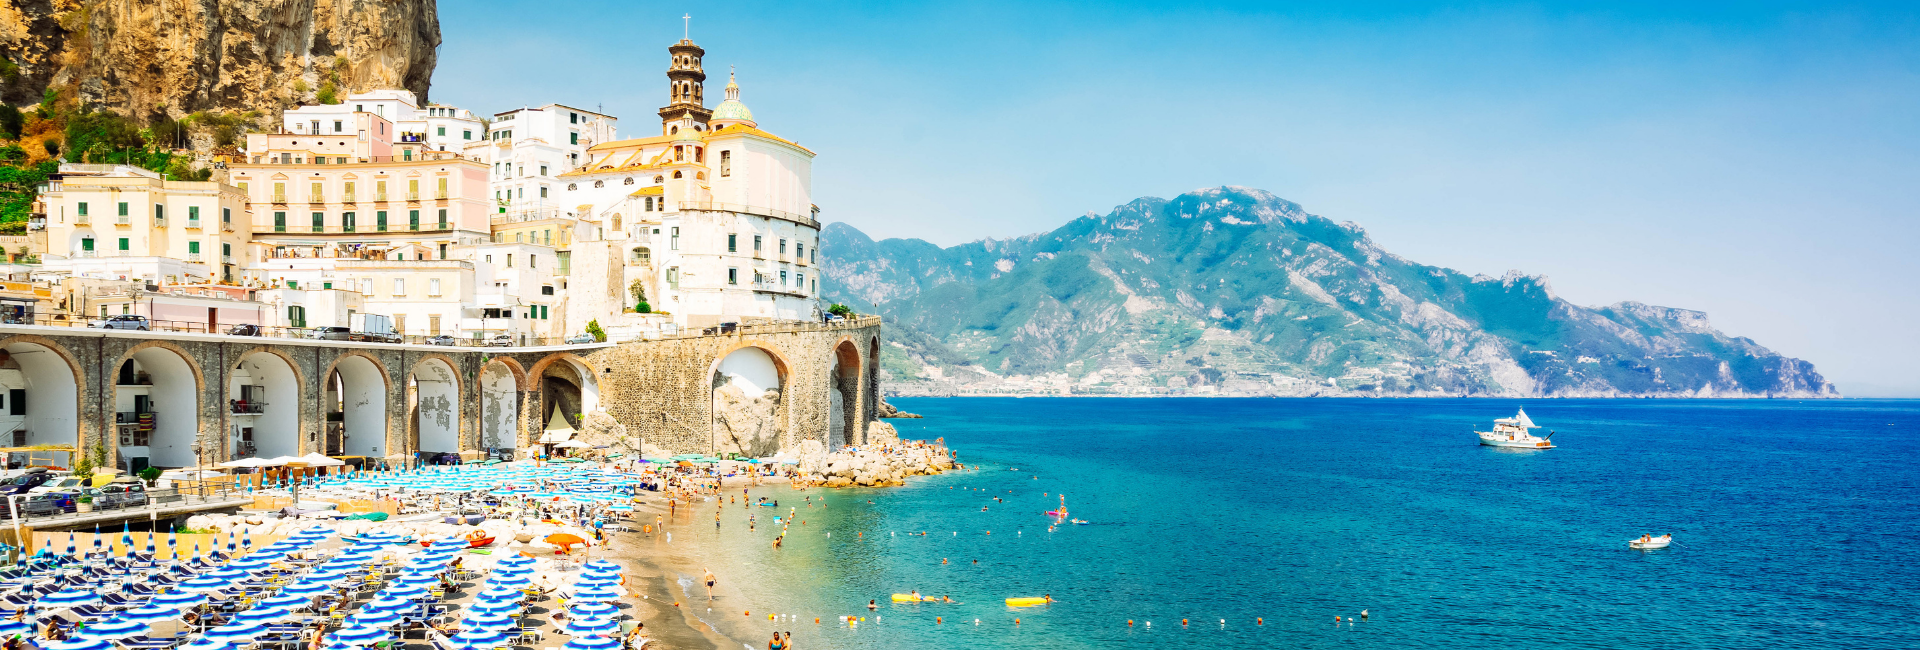 view of the Amalfi Coast umbrella lined beaches and bright blue water